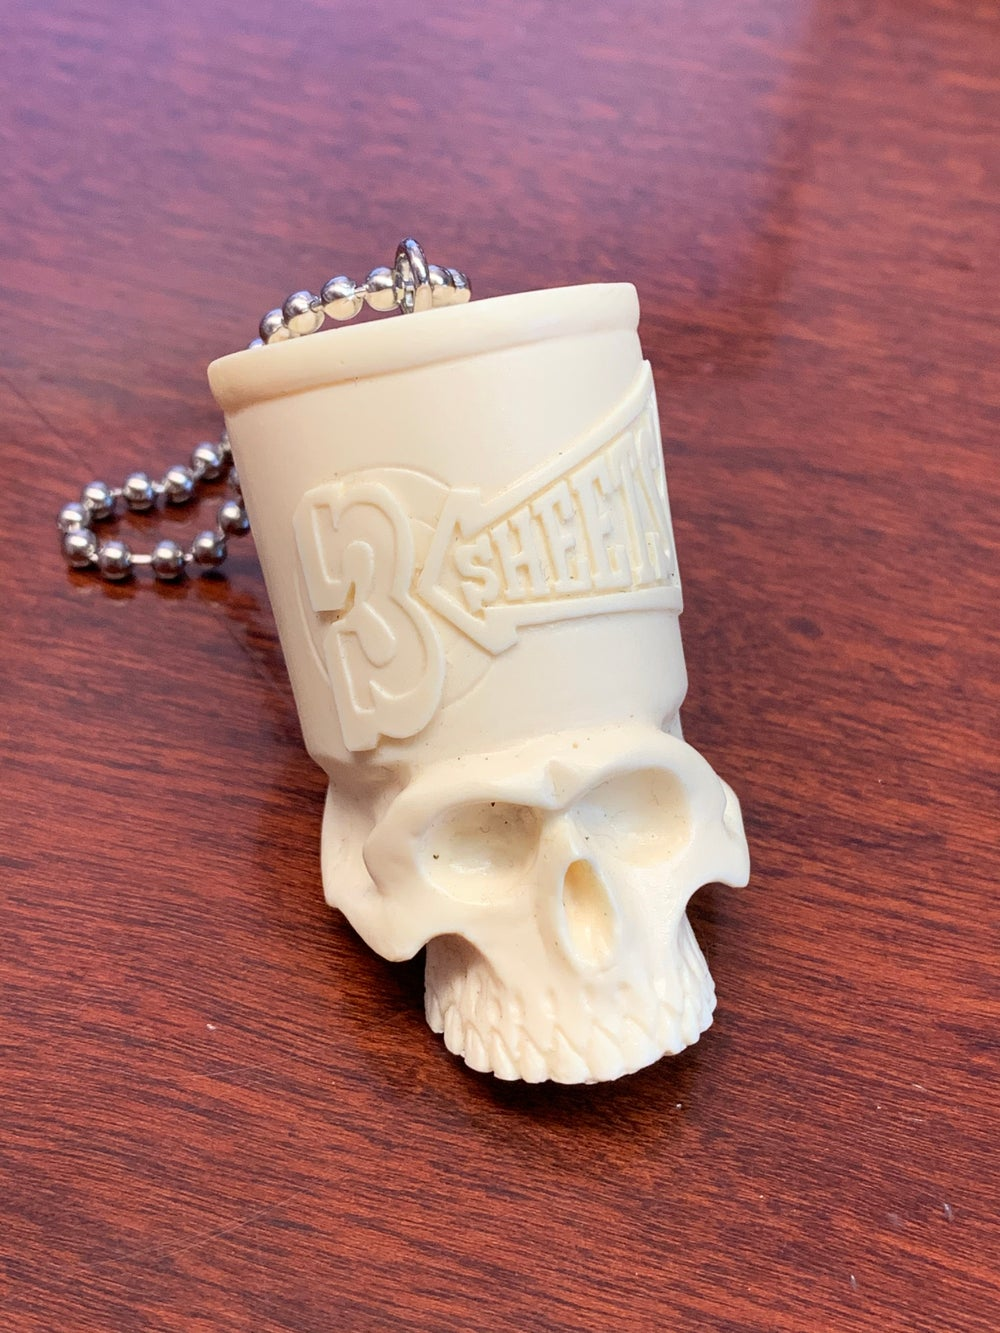 1-SHOT SKULL Key Chain